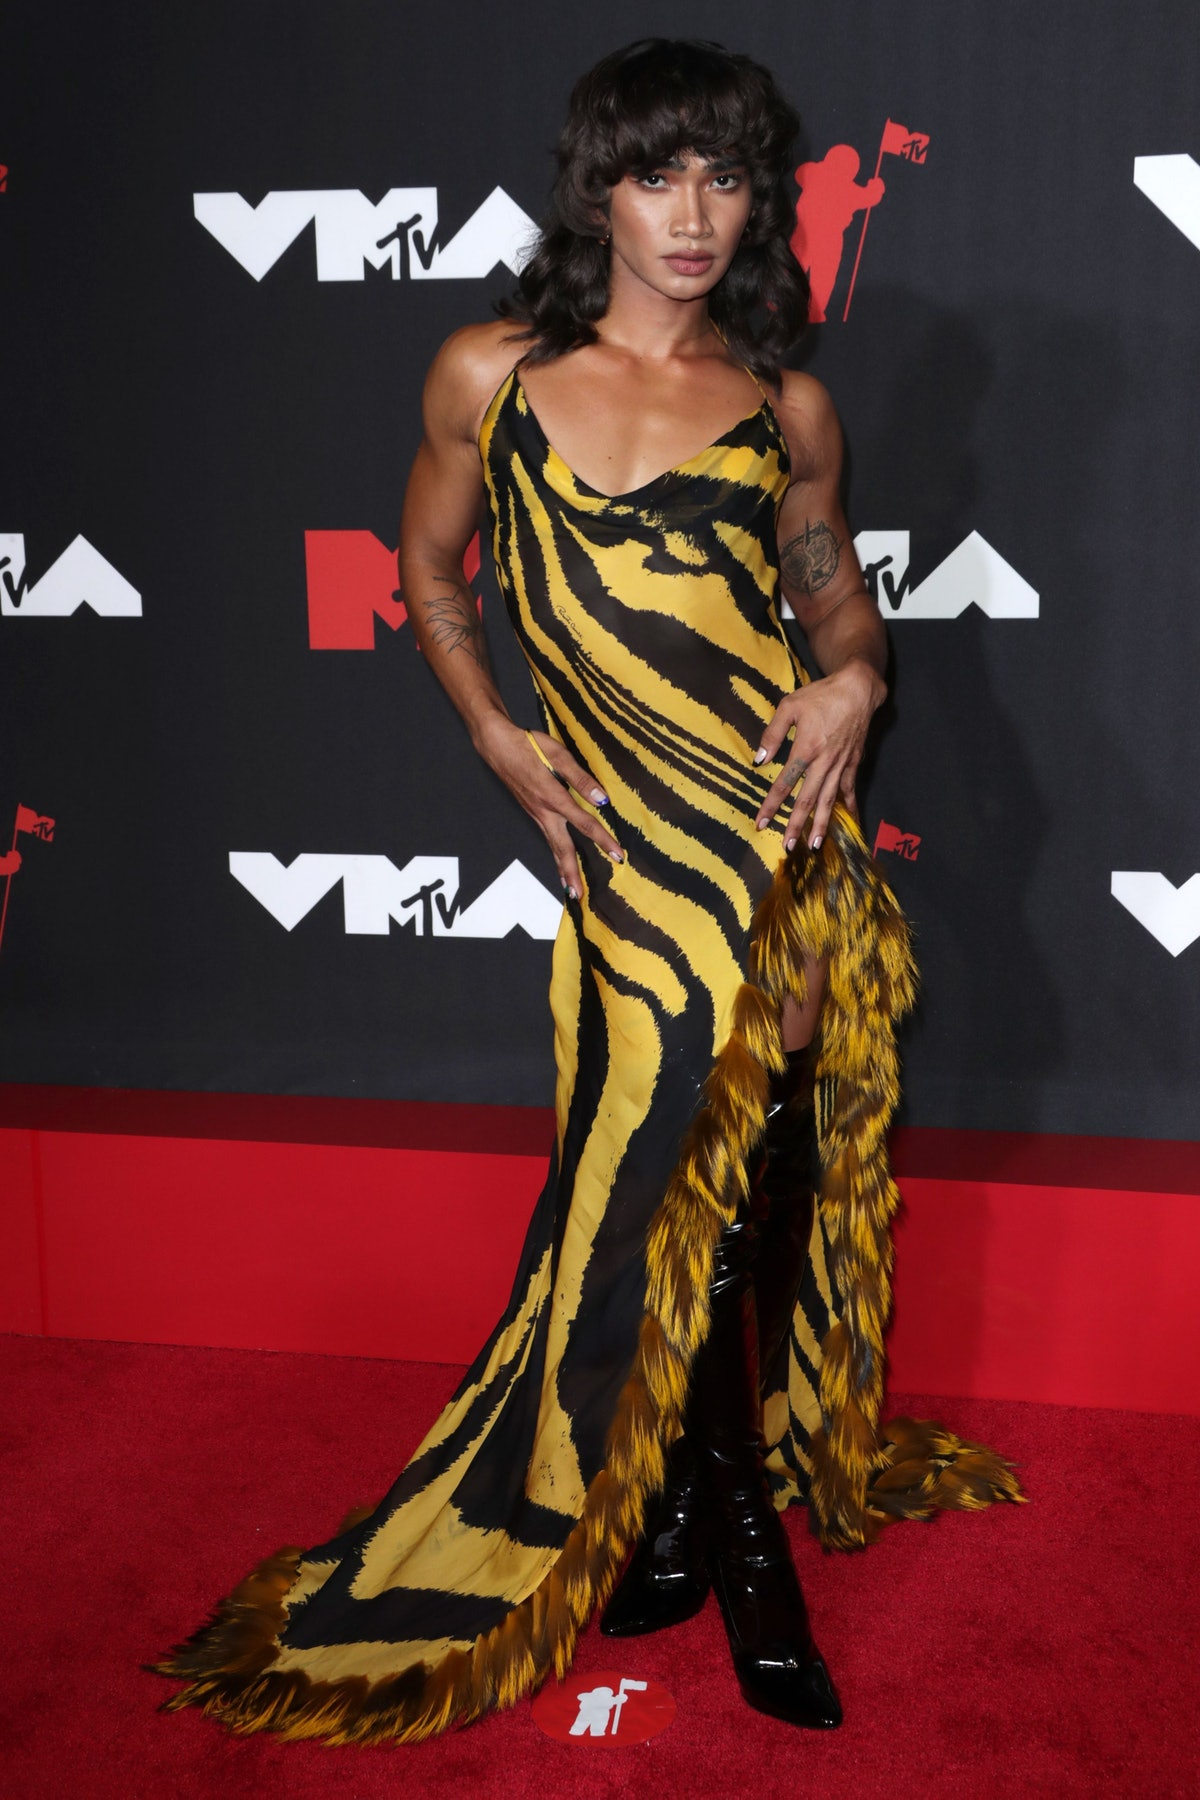 Bretman Rock at the 2021 VMAs in a yellow-and-black striped gown formerly worn by Aaliyah in 2001.